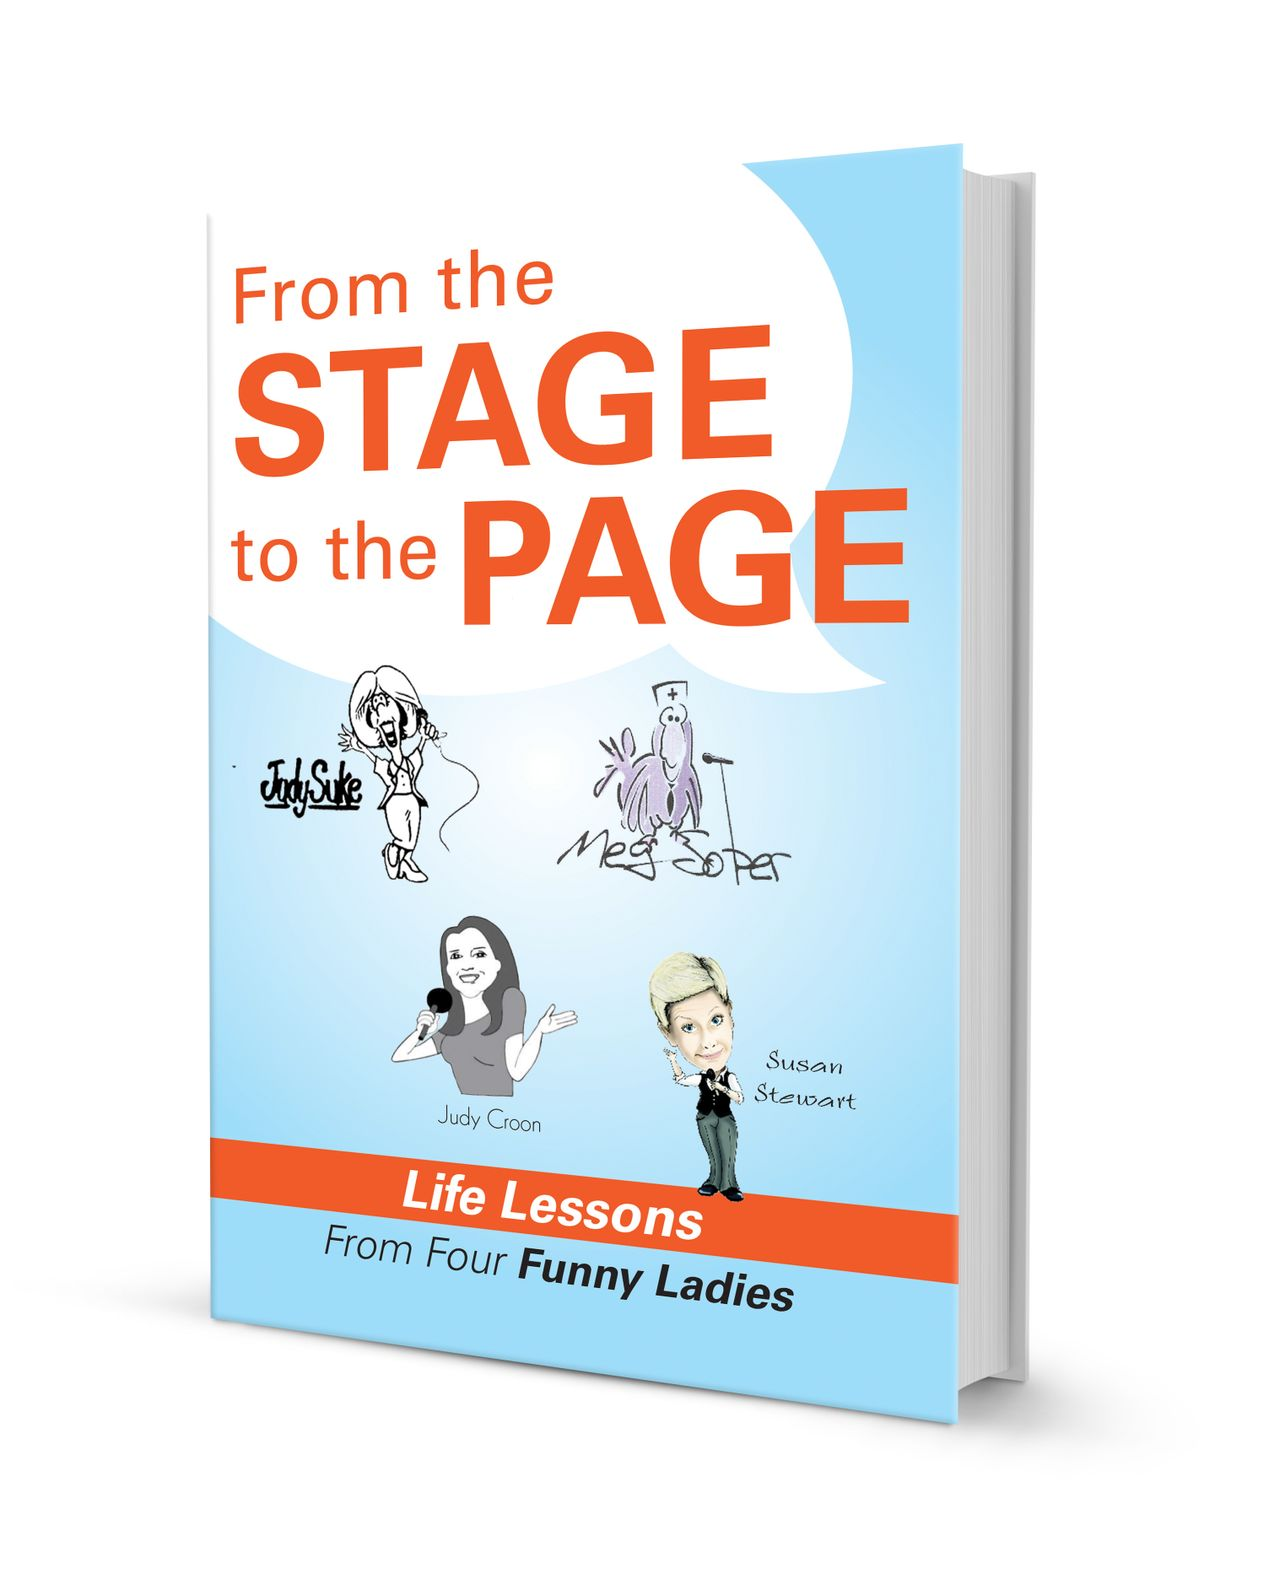 From The Stage To The Page E-Book For Apple Devices (iPad, iPod, iPhone)